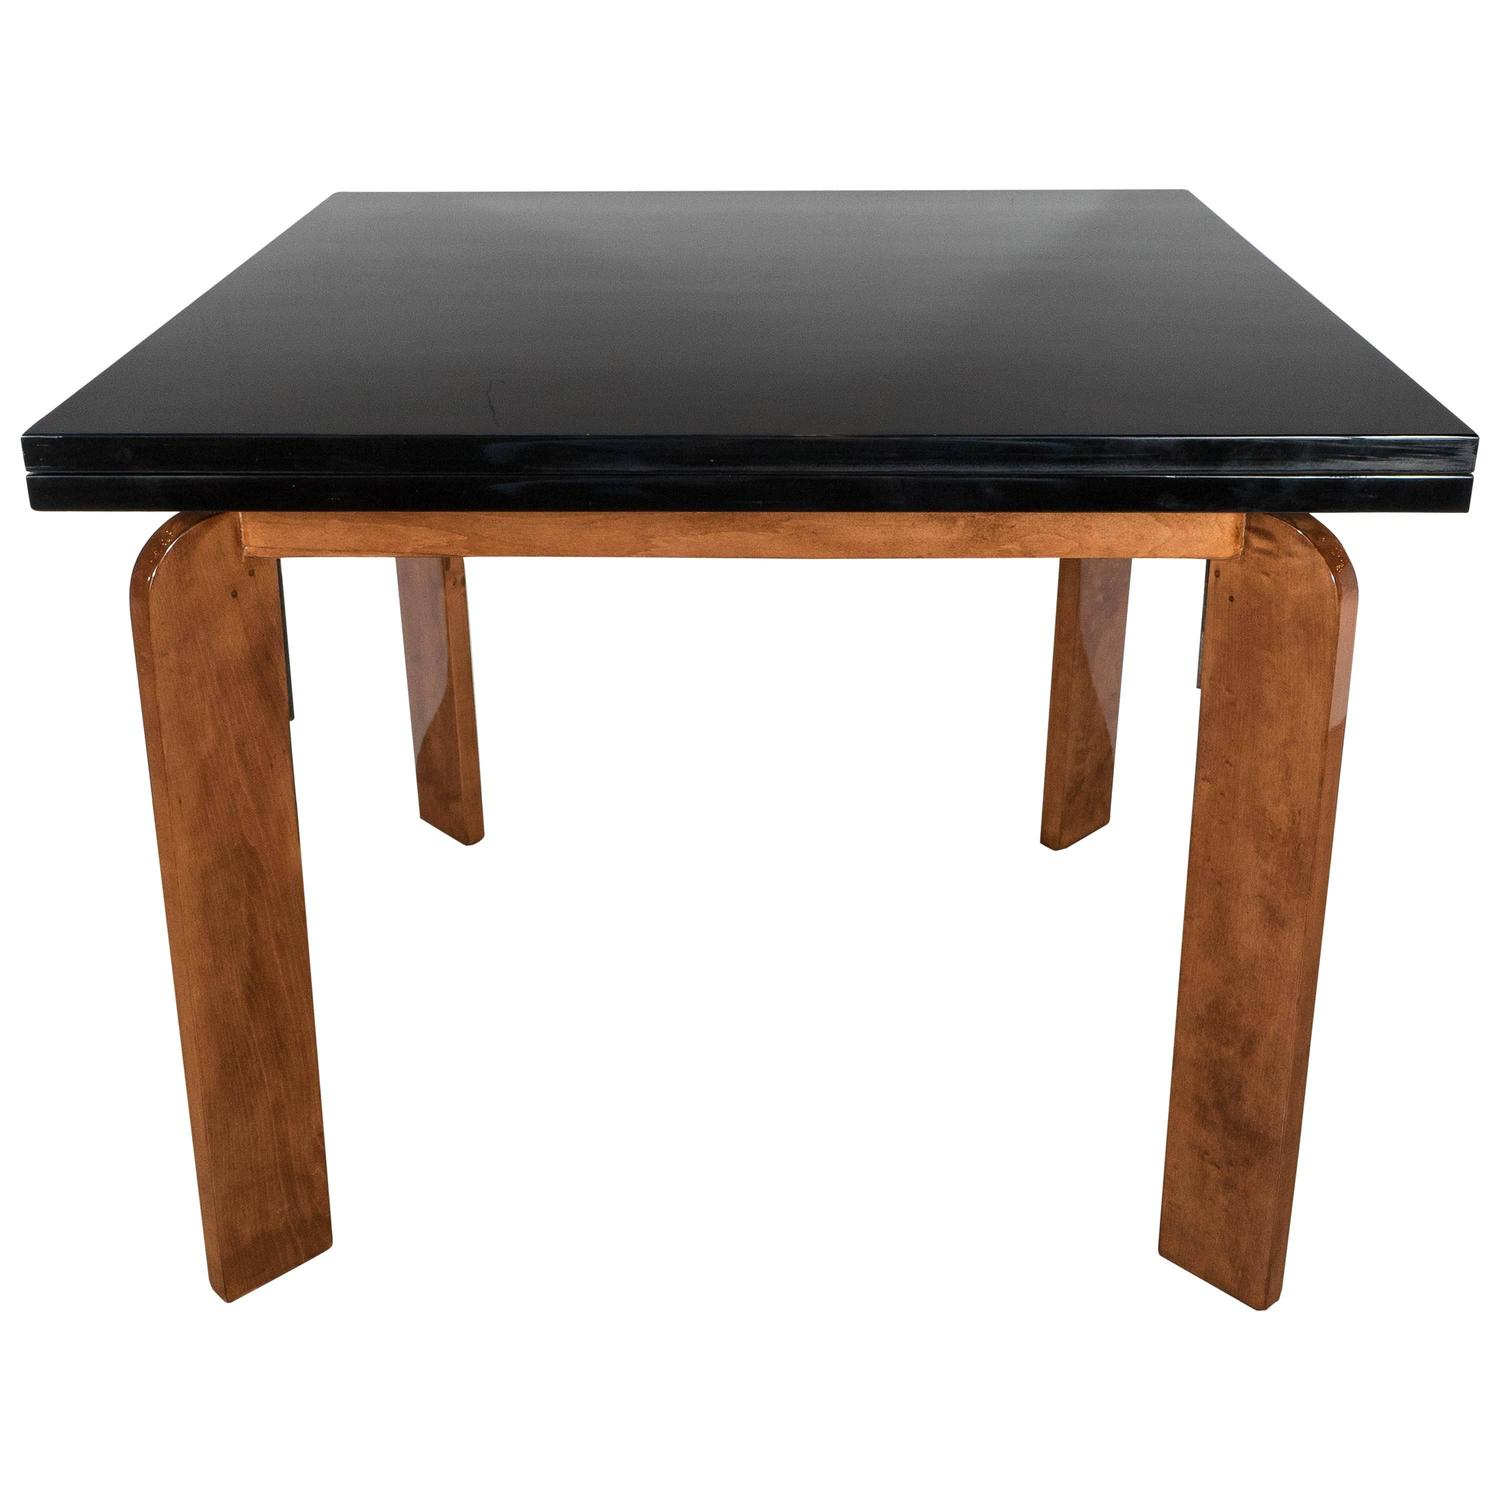 Streamline art deco flip top extension dining table or game table by modernage at 1stdibs - Art deco dining room table ...